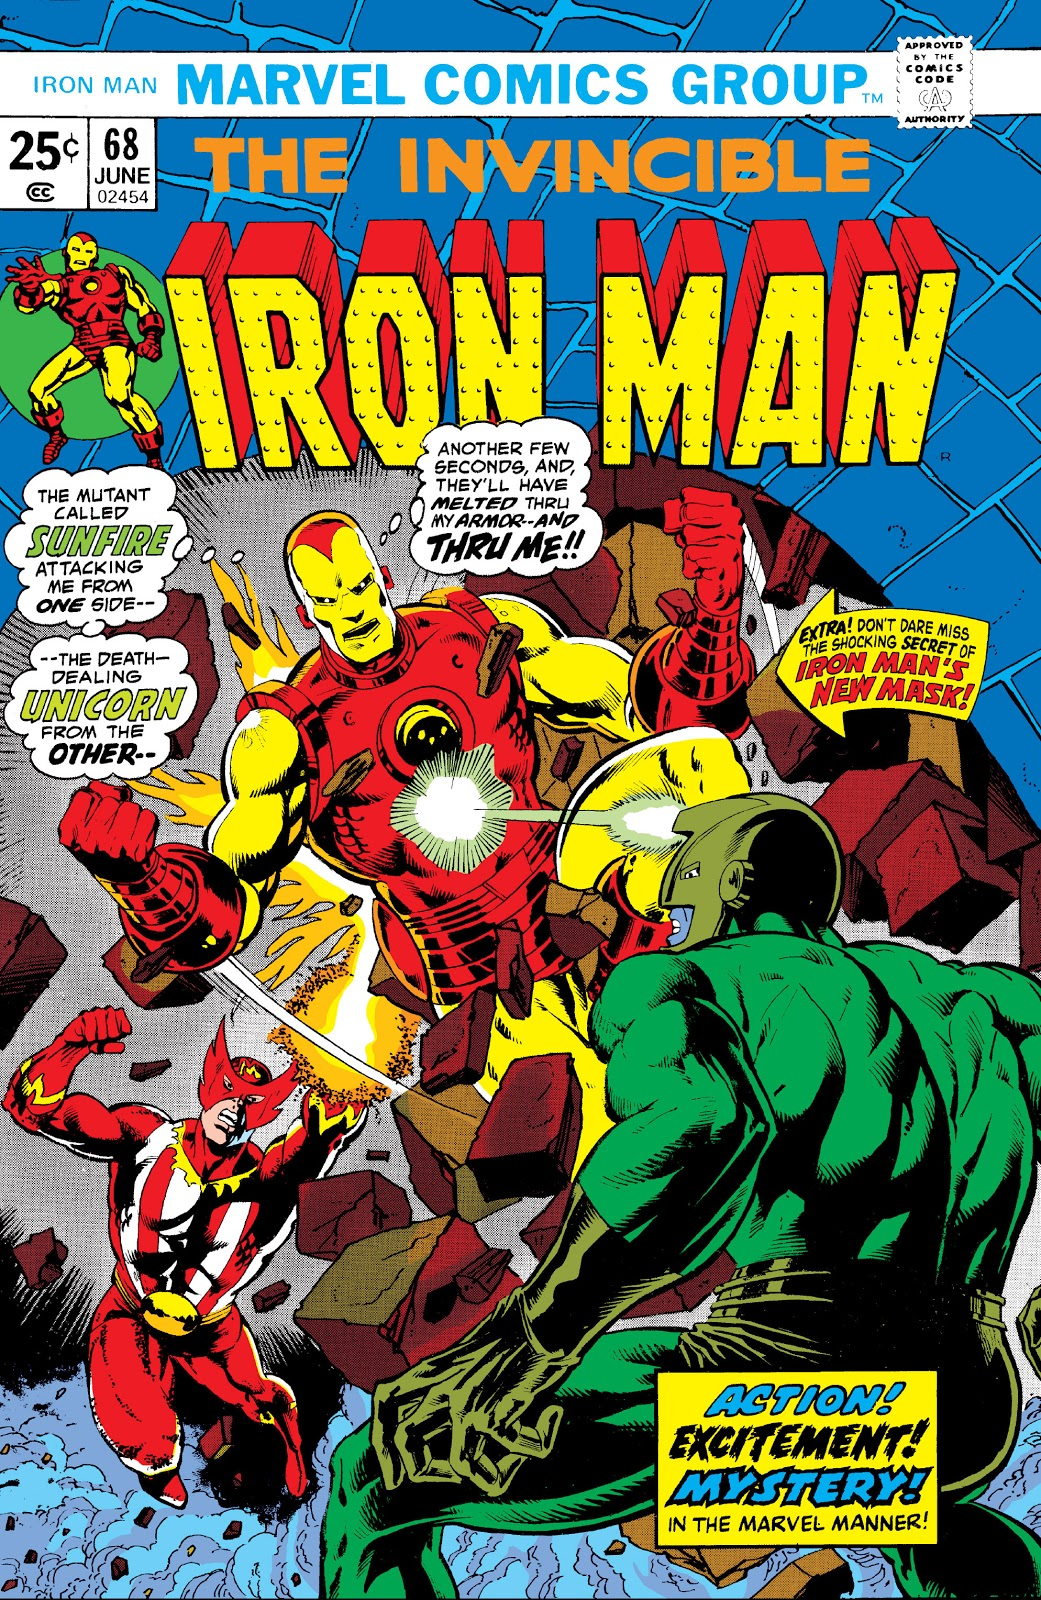 Iron Man Vol 1 68.jpg